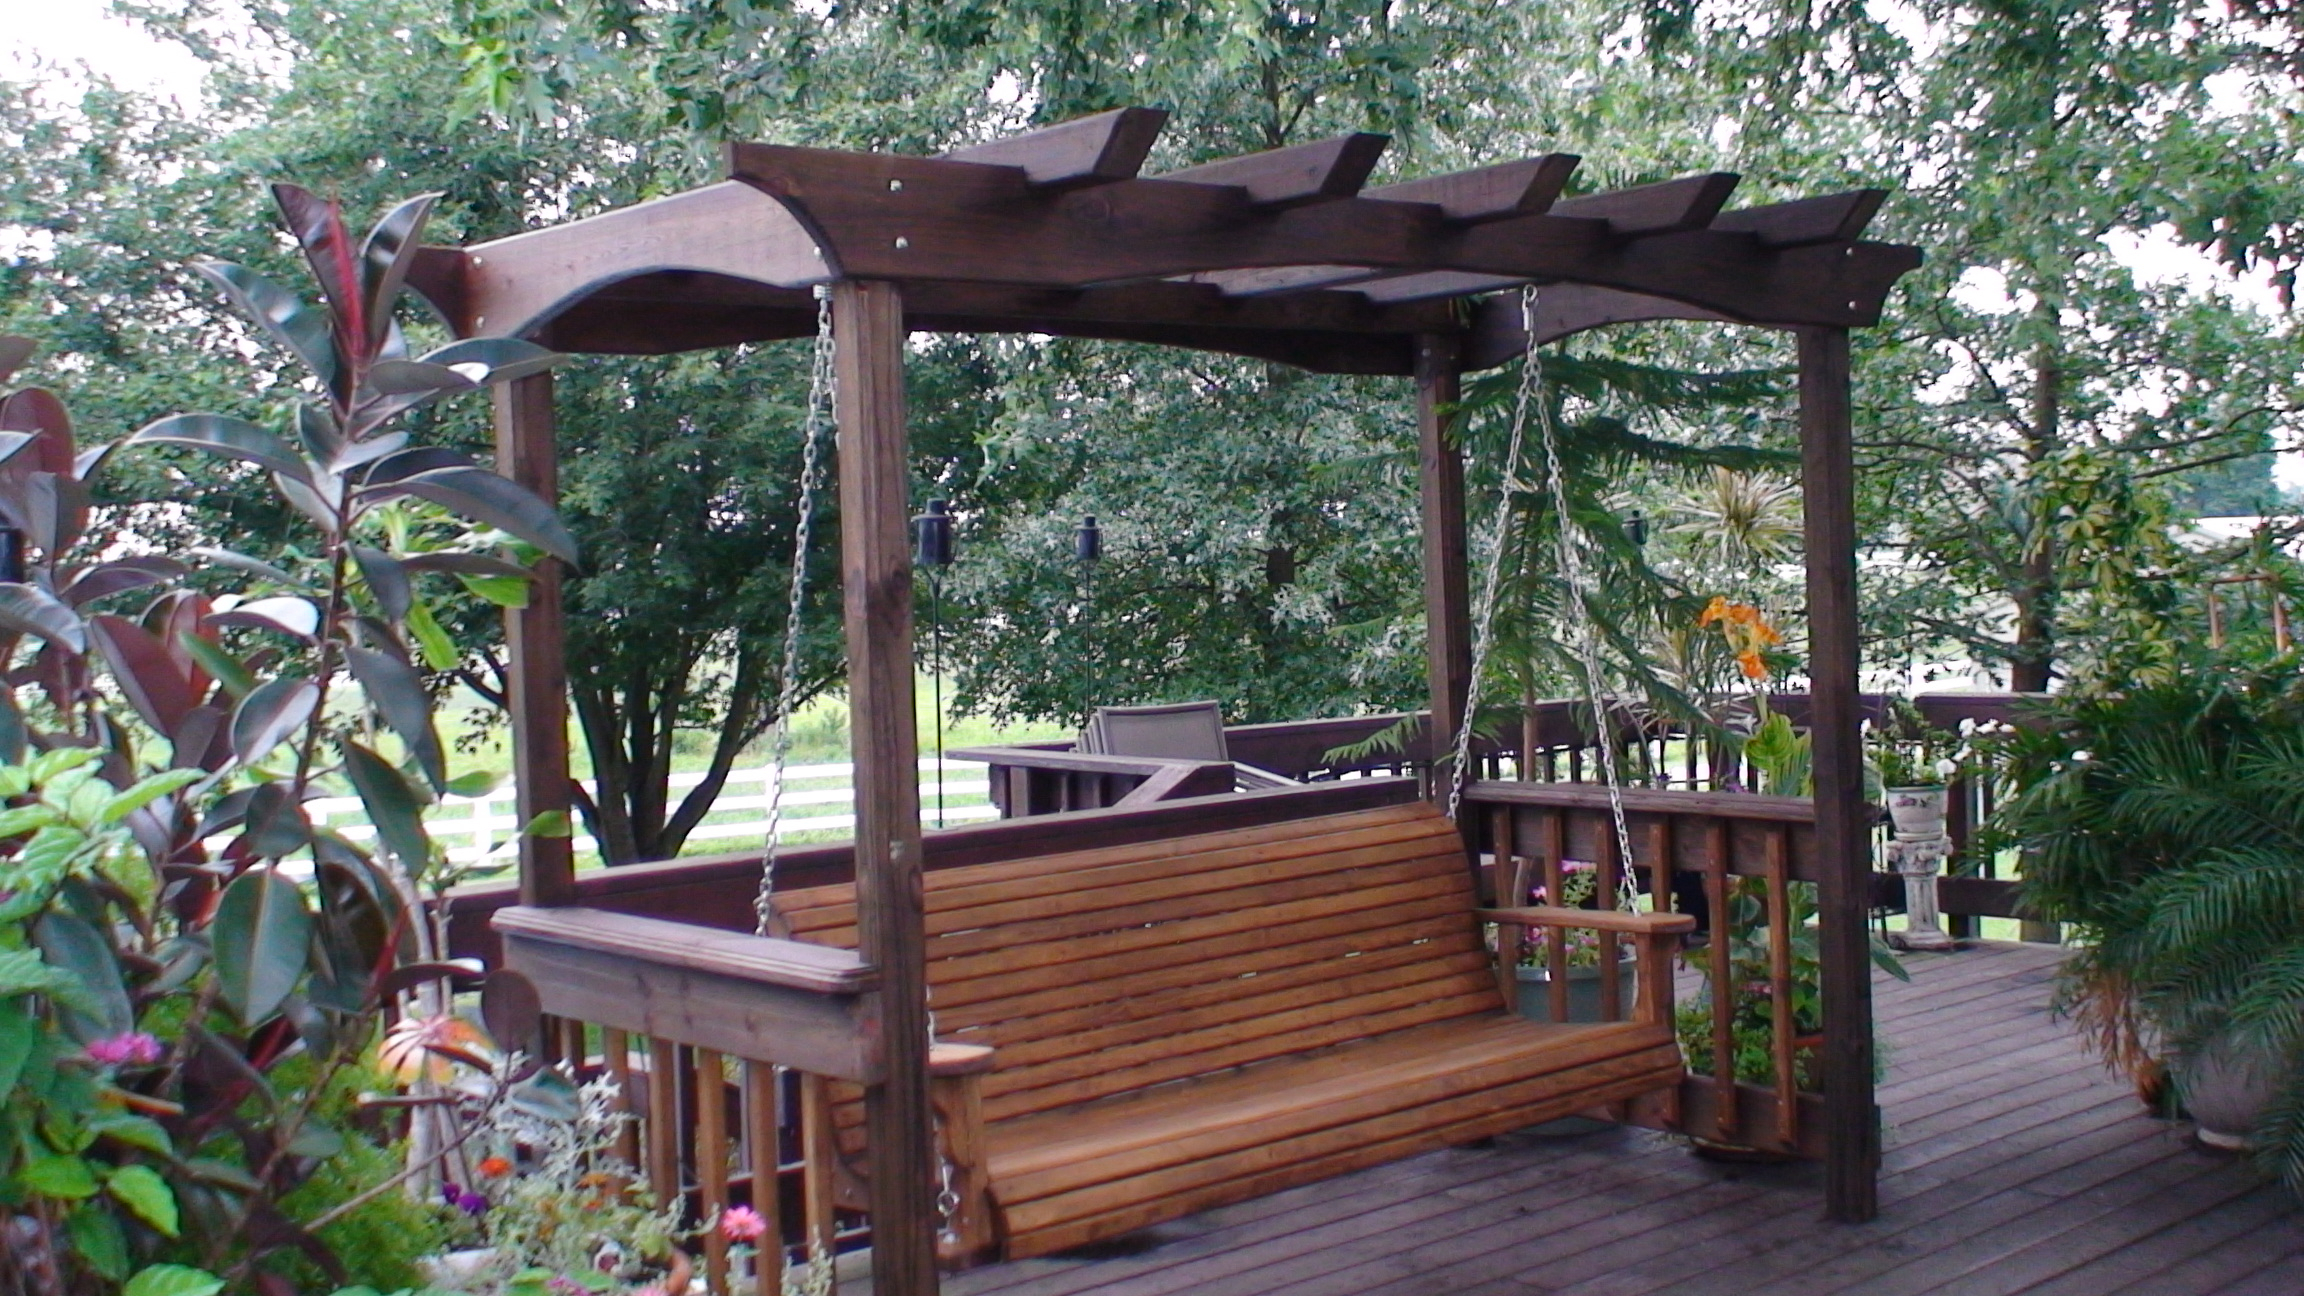 Inspirations: Enjoy Your All Day With Cozy Wooden Porch With Most Recent Canopy Patio Porch Swing With Stand (View 30 of 30)